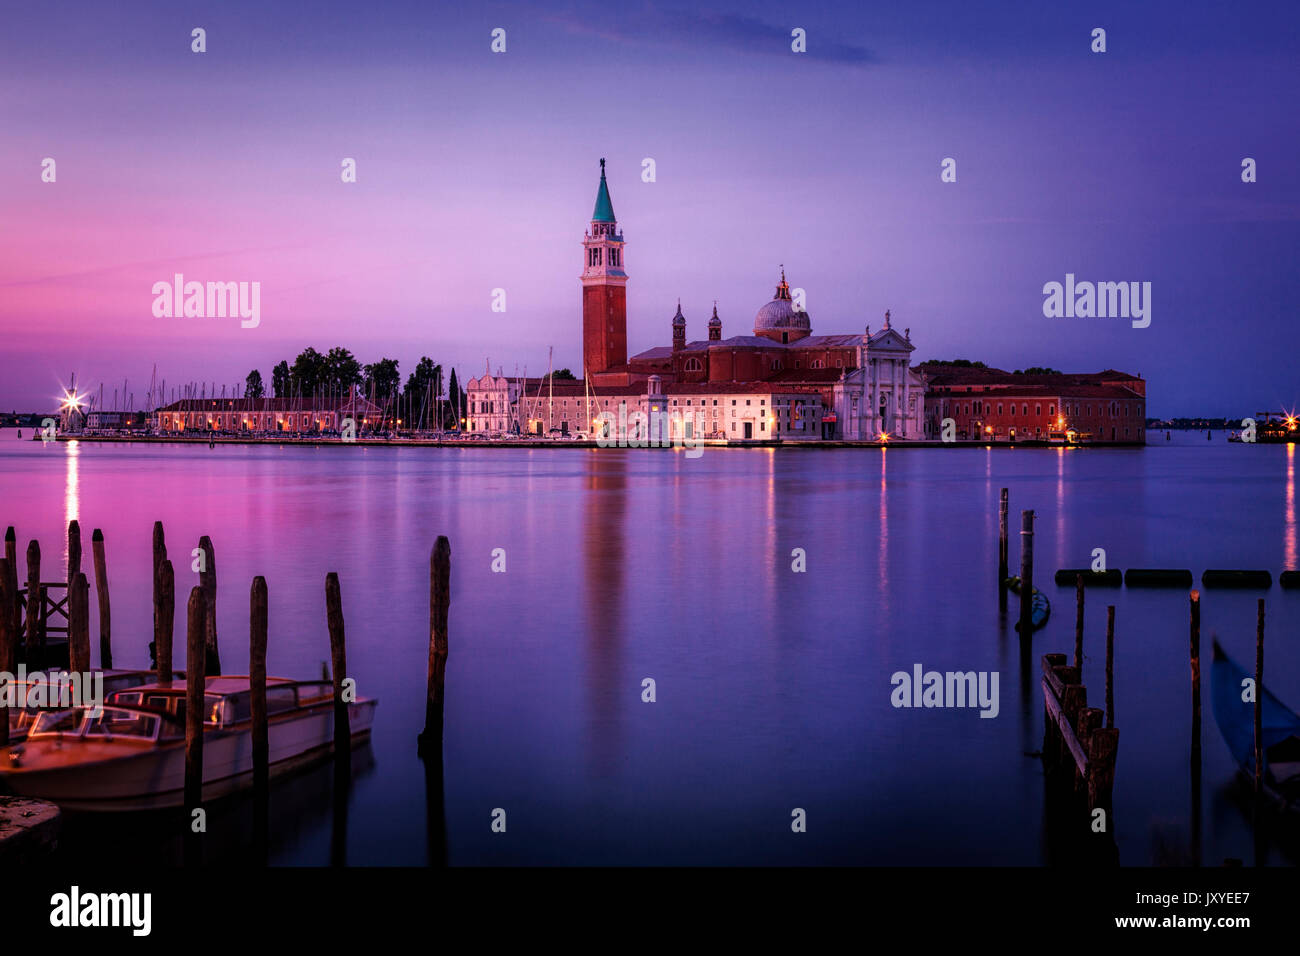 Early morning light over the island of San Giorgio Maggiore seen from the edge of St. Mark's Square in Venice, Italy. - Stock Image